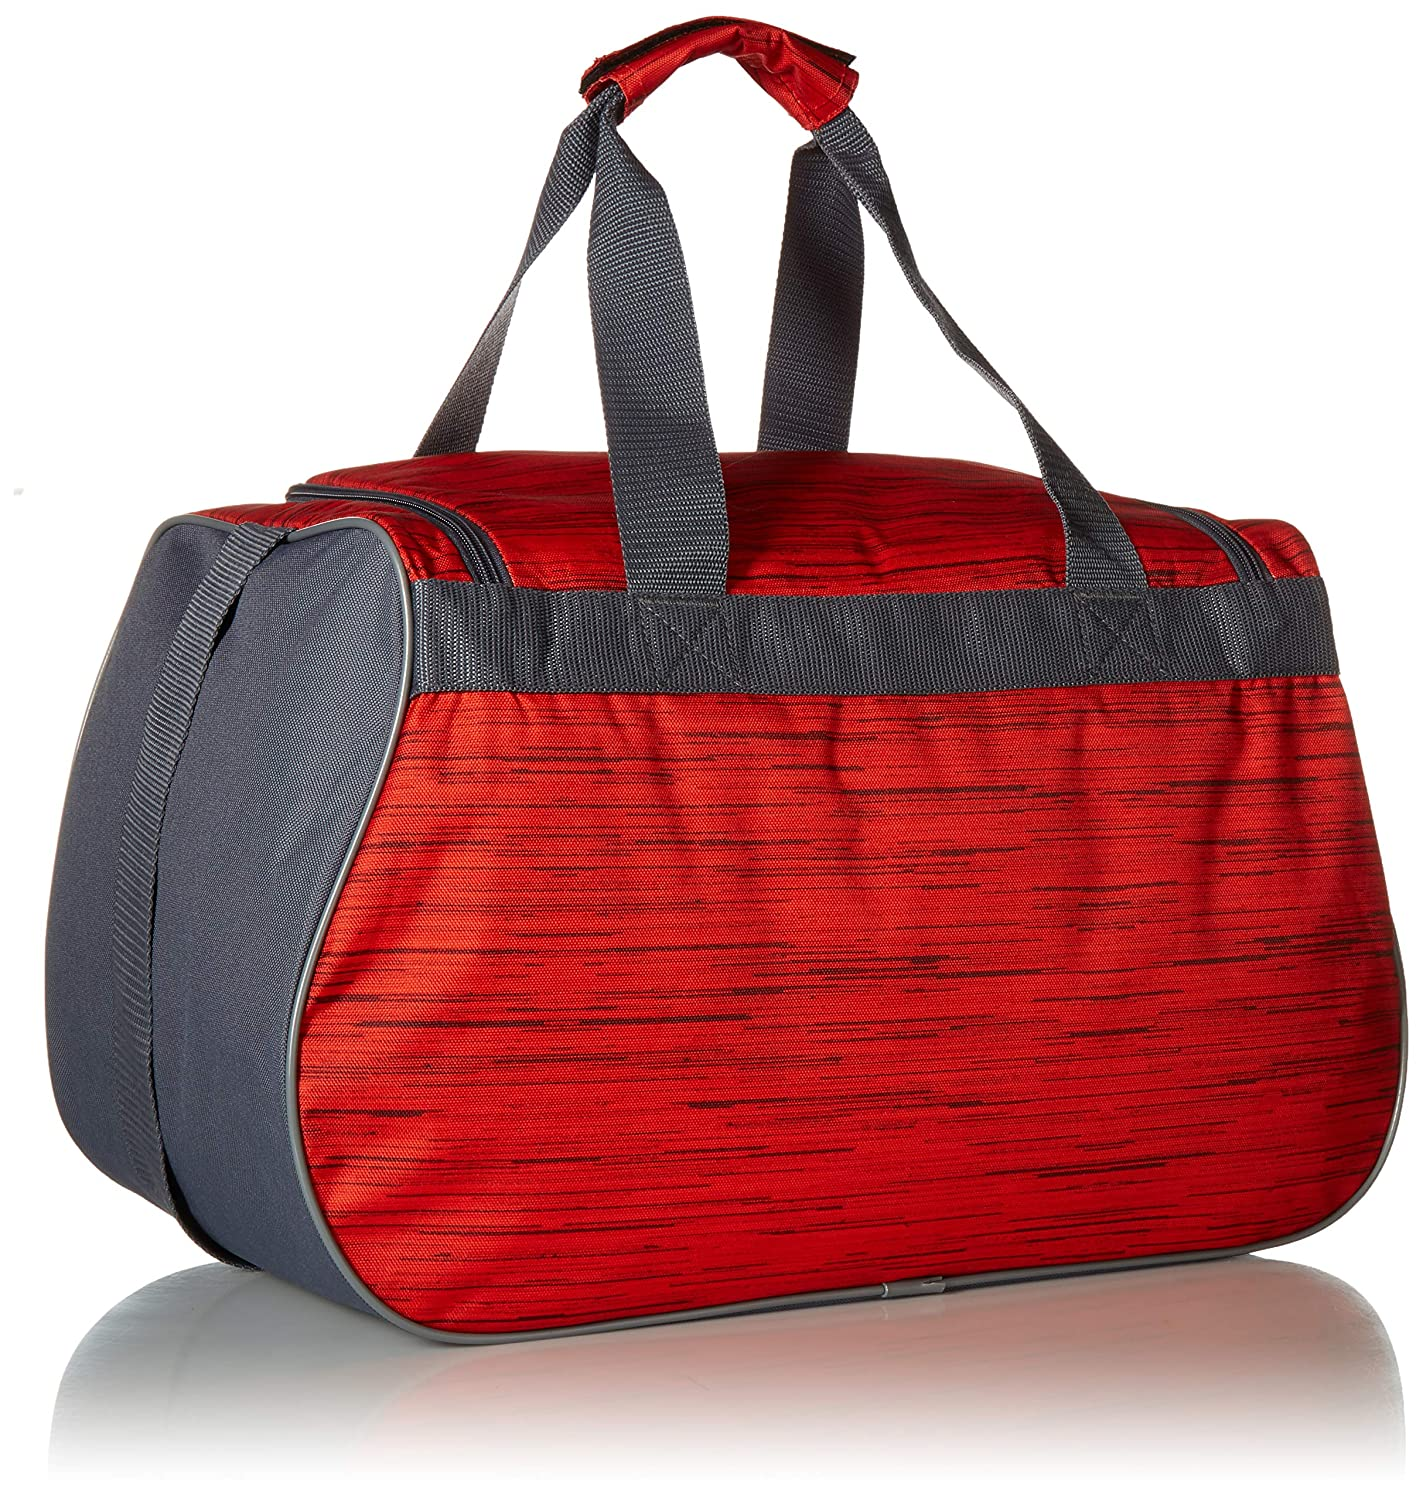 c8f69b3f2621 Amazon.com  adidas Diablo Duffel Bag